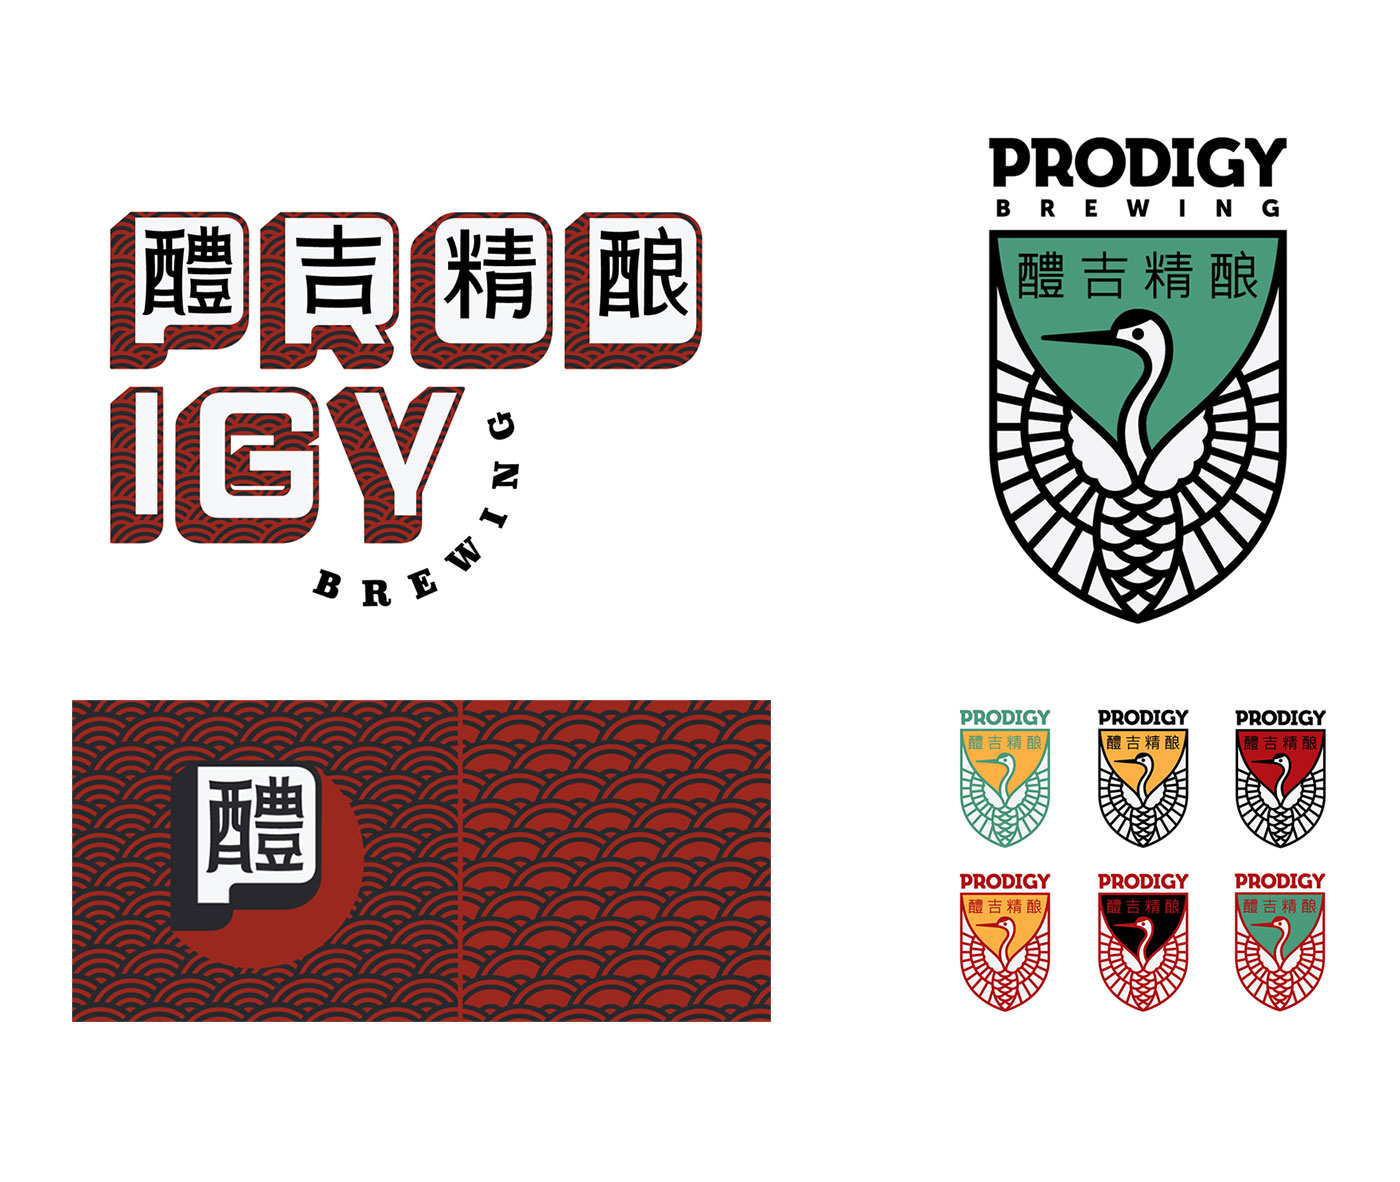 Prodigy Brewing logo options